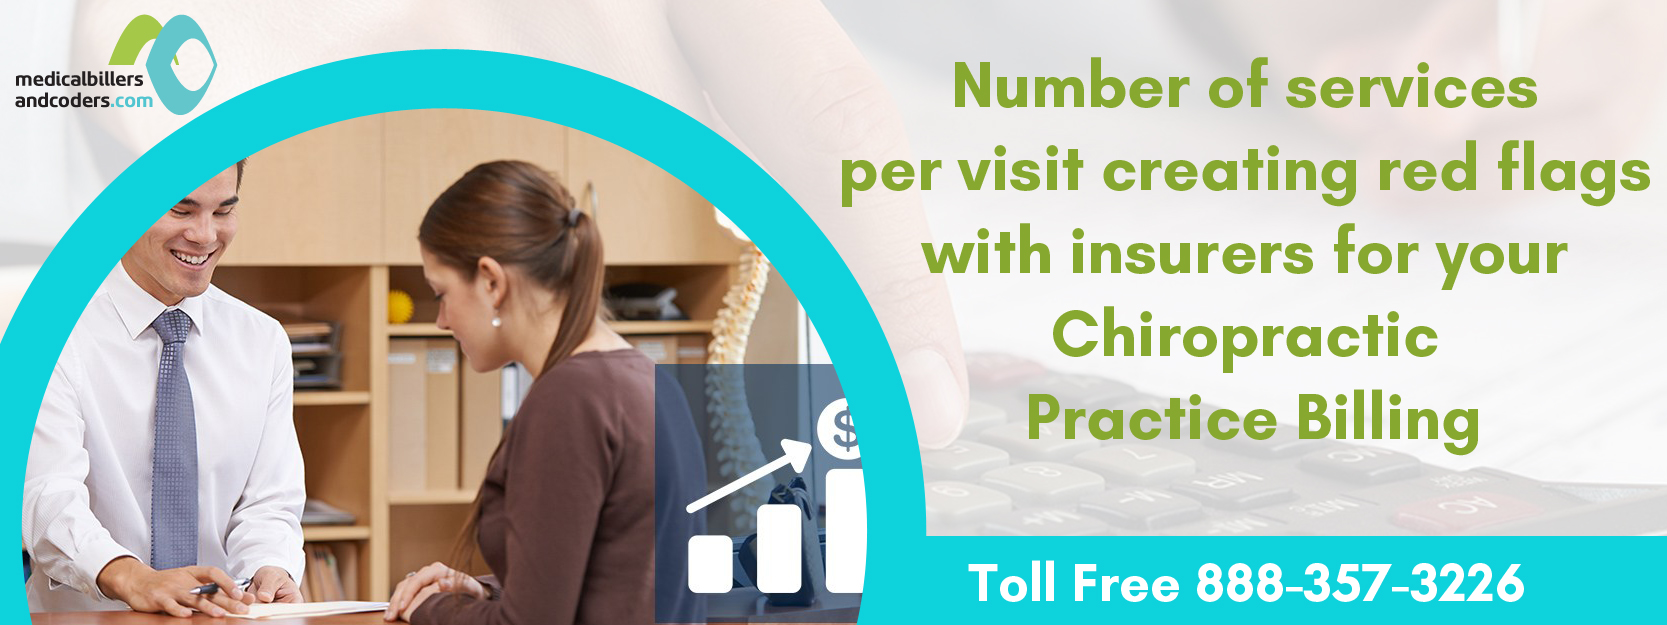 number-of-services-per-visit-creating-red-flags-with-insurers-for-your-chiropractic-medical-billing